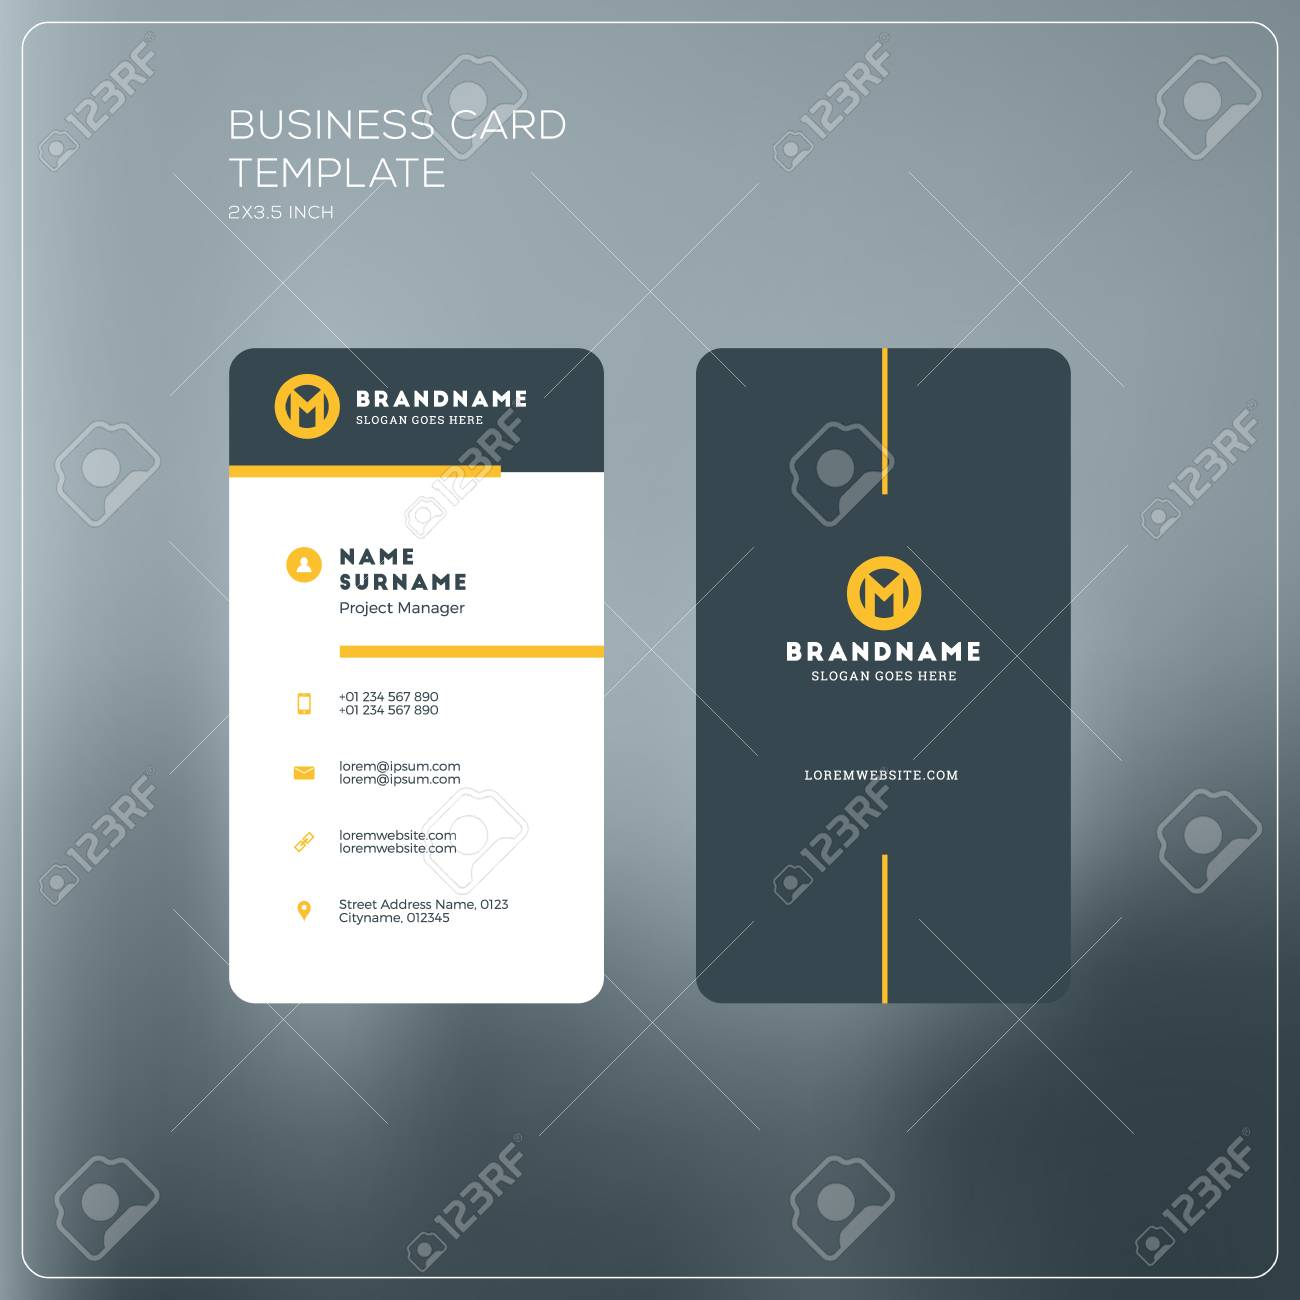 Vertical business card print template personal business card vector vertical business card print template personal business card with company logo black and yellow colors clean flat design vector illustration accmission